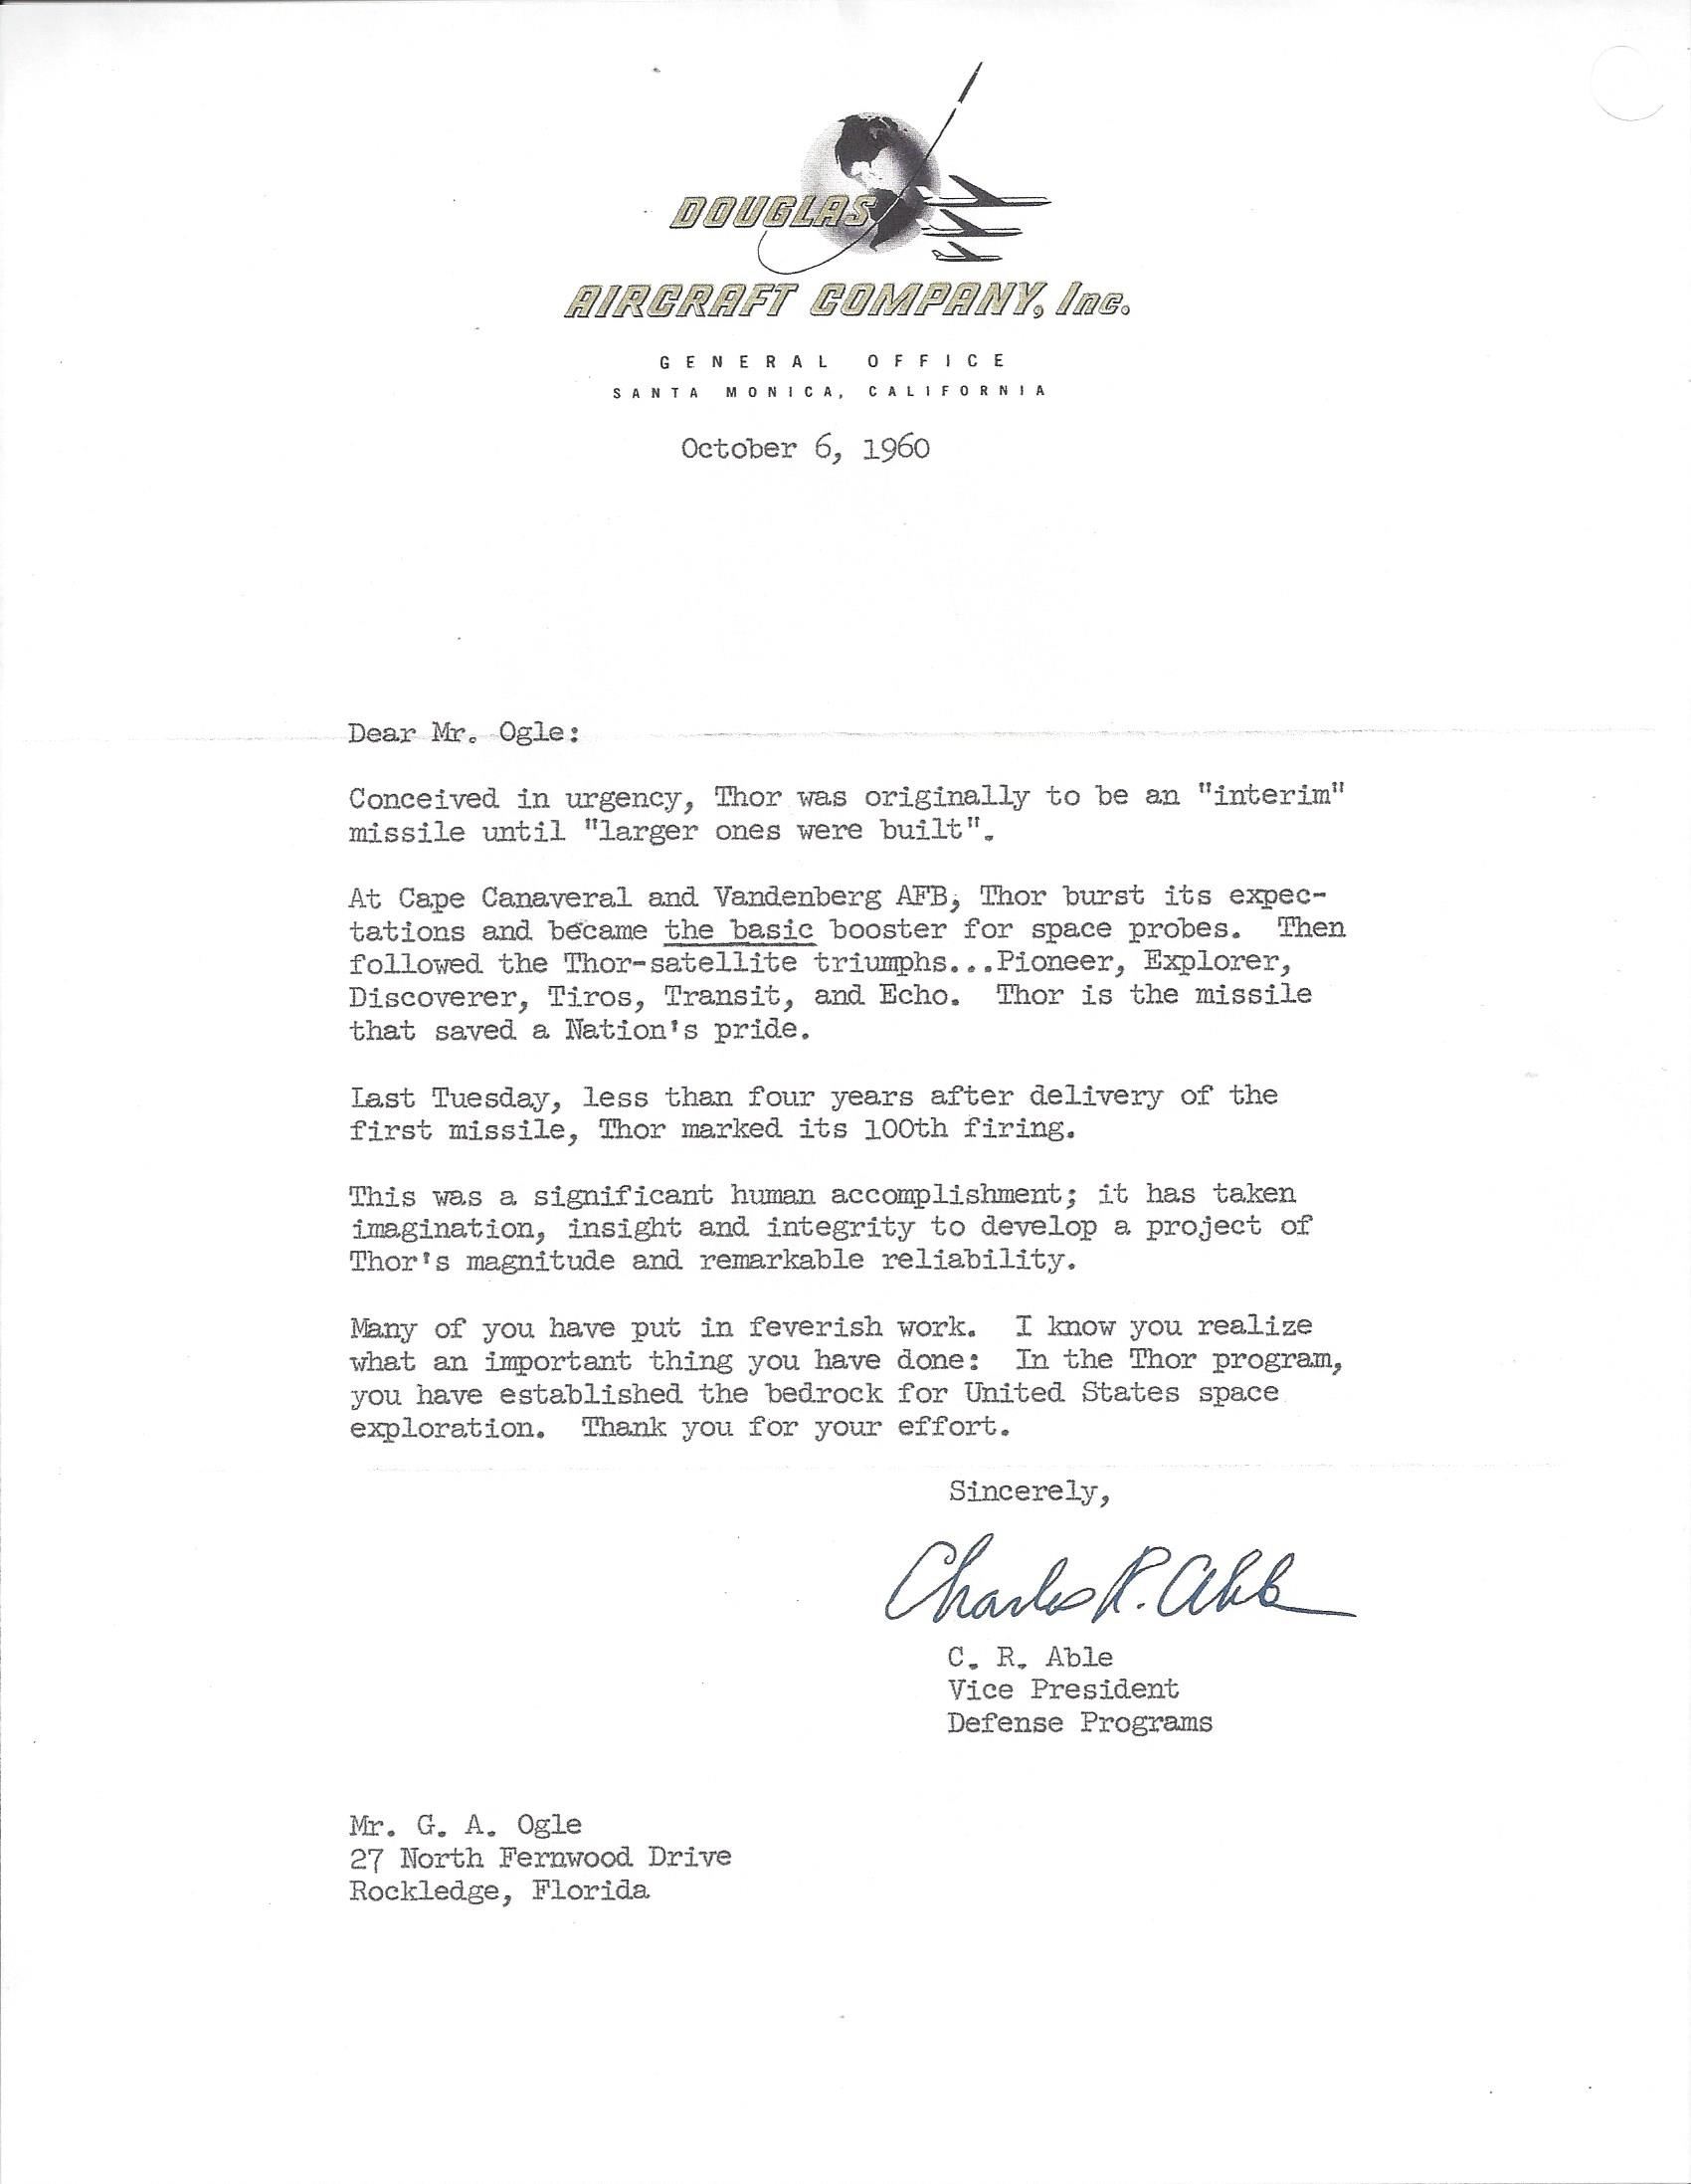 Letter of congratulations from Douglas Aircraft Company on the 100th launch of the Thor missile which Douglas built.